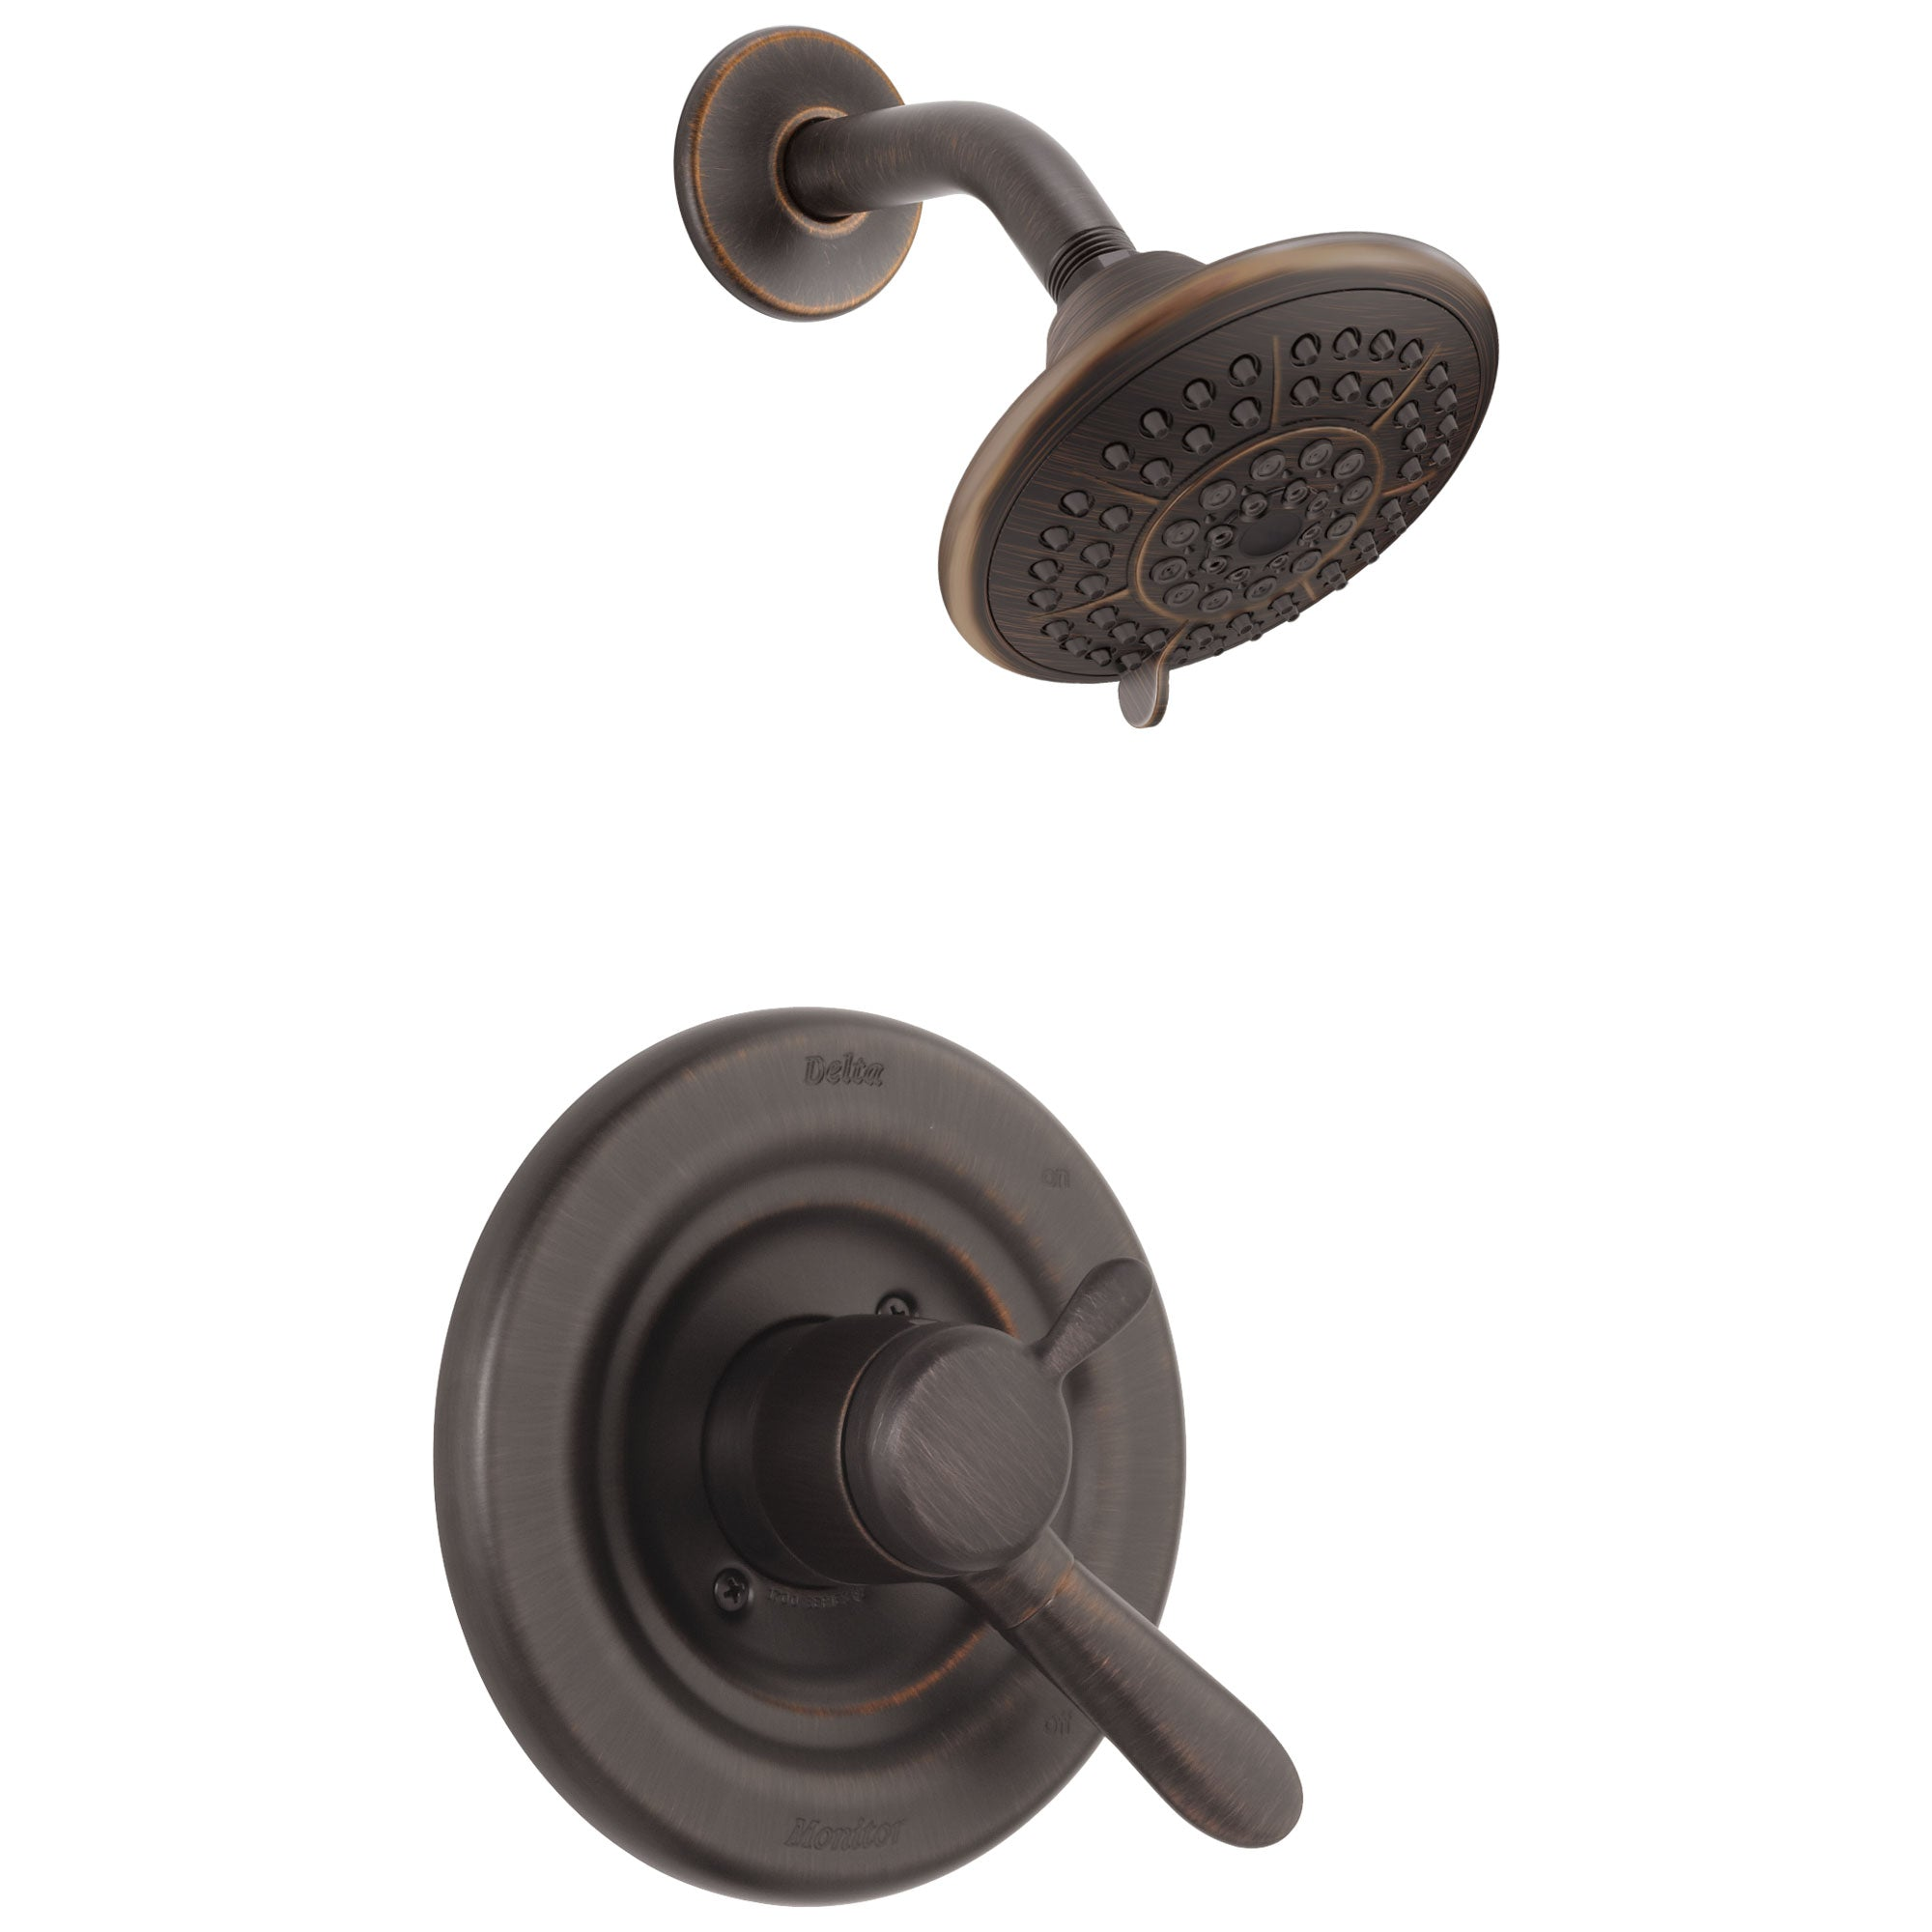 Delta Lahara Venetian Bronze Temp/Volume Control Shower Faucet with Valve D741V